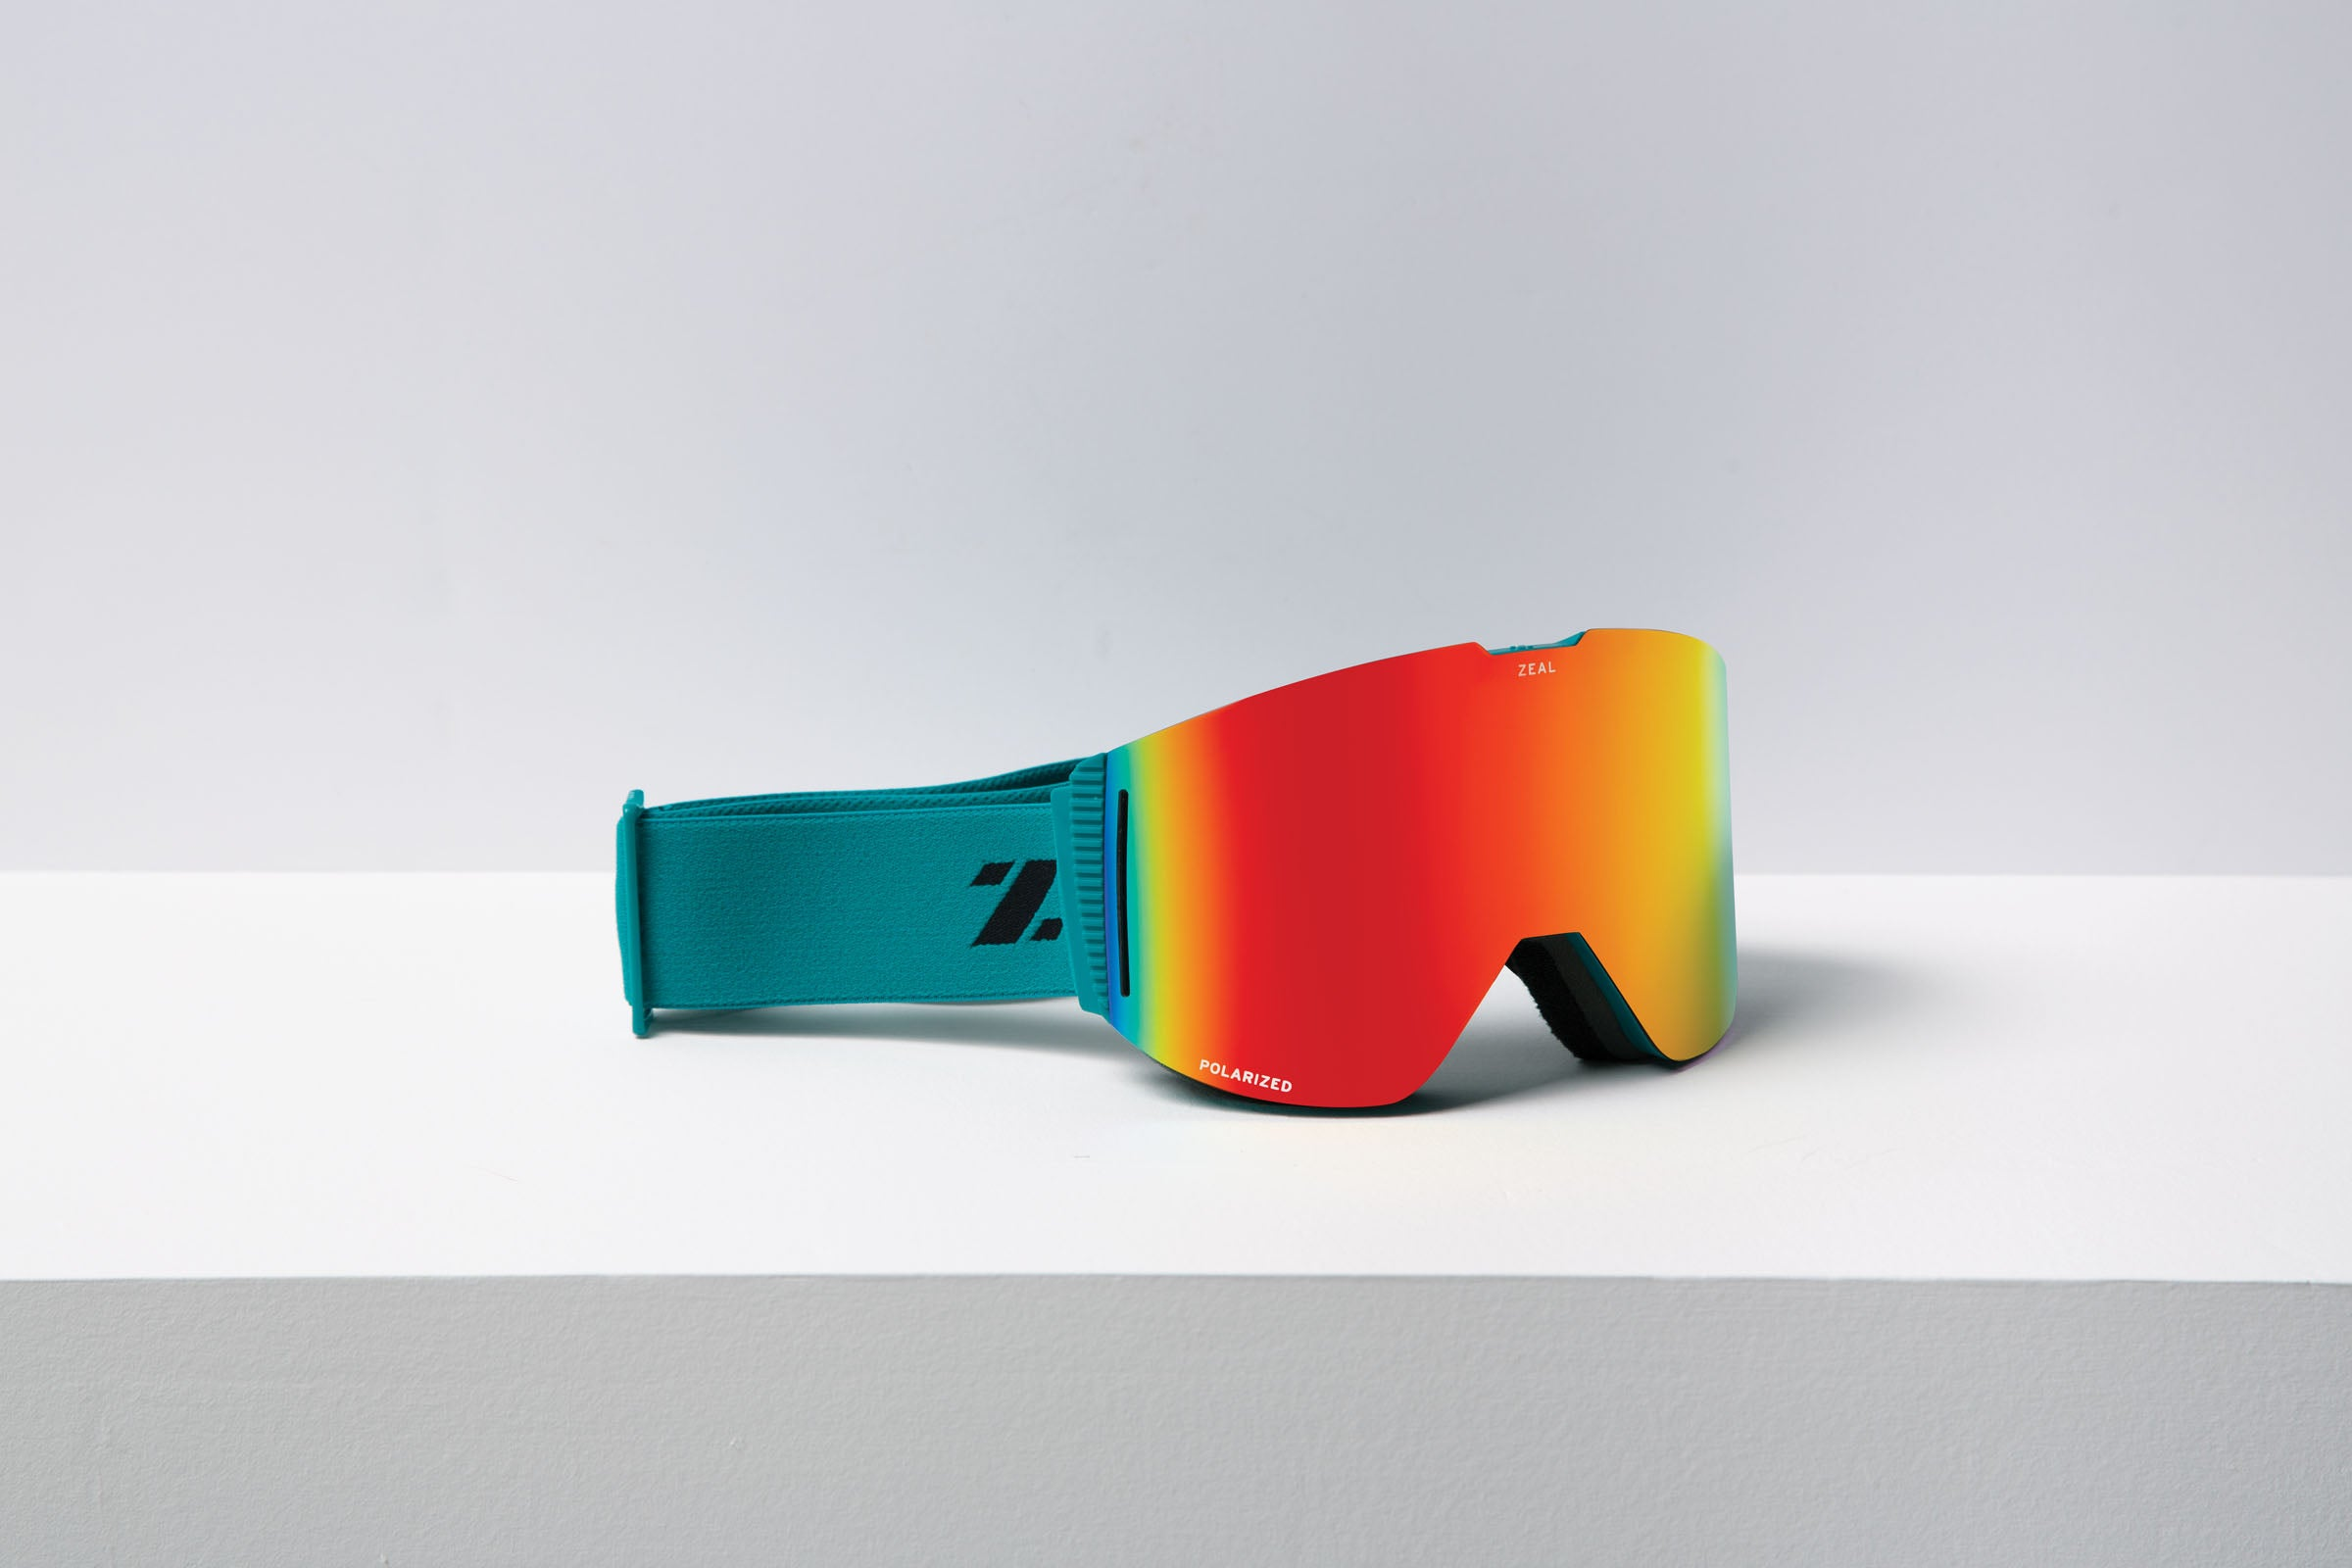 2022 Zeal Lookout goggles